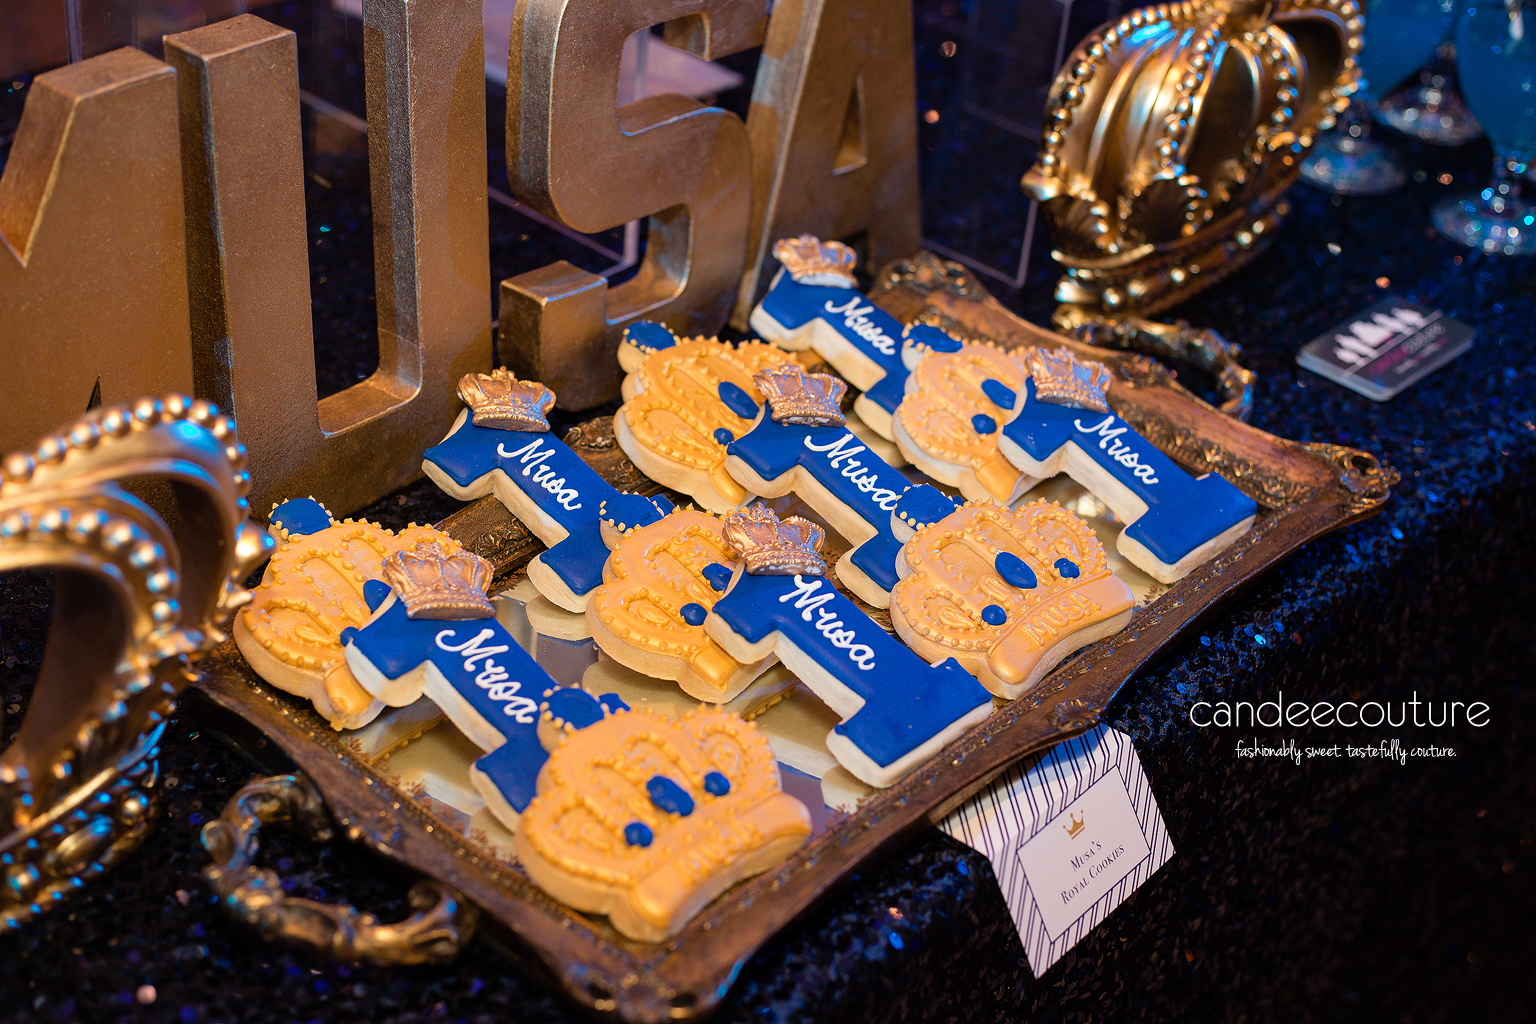 Royal prince theme cookies, prince cookies, royal prince cookies, prince theme dessert table, royal prince theme table, gold backdrop, royal prince cookies, royal prince party, birthday, royal prince theme